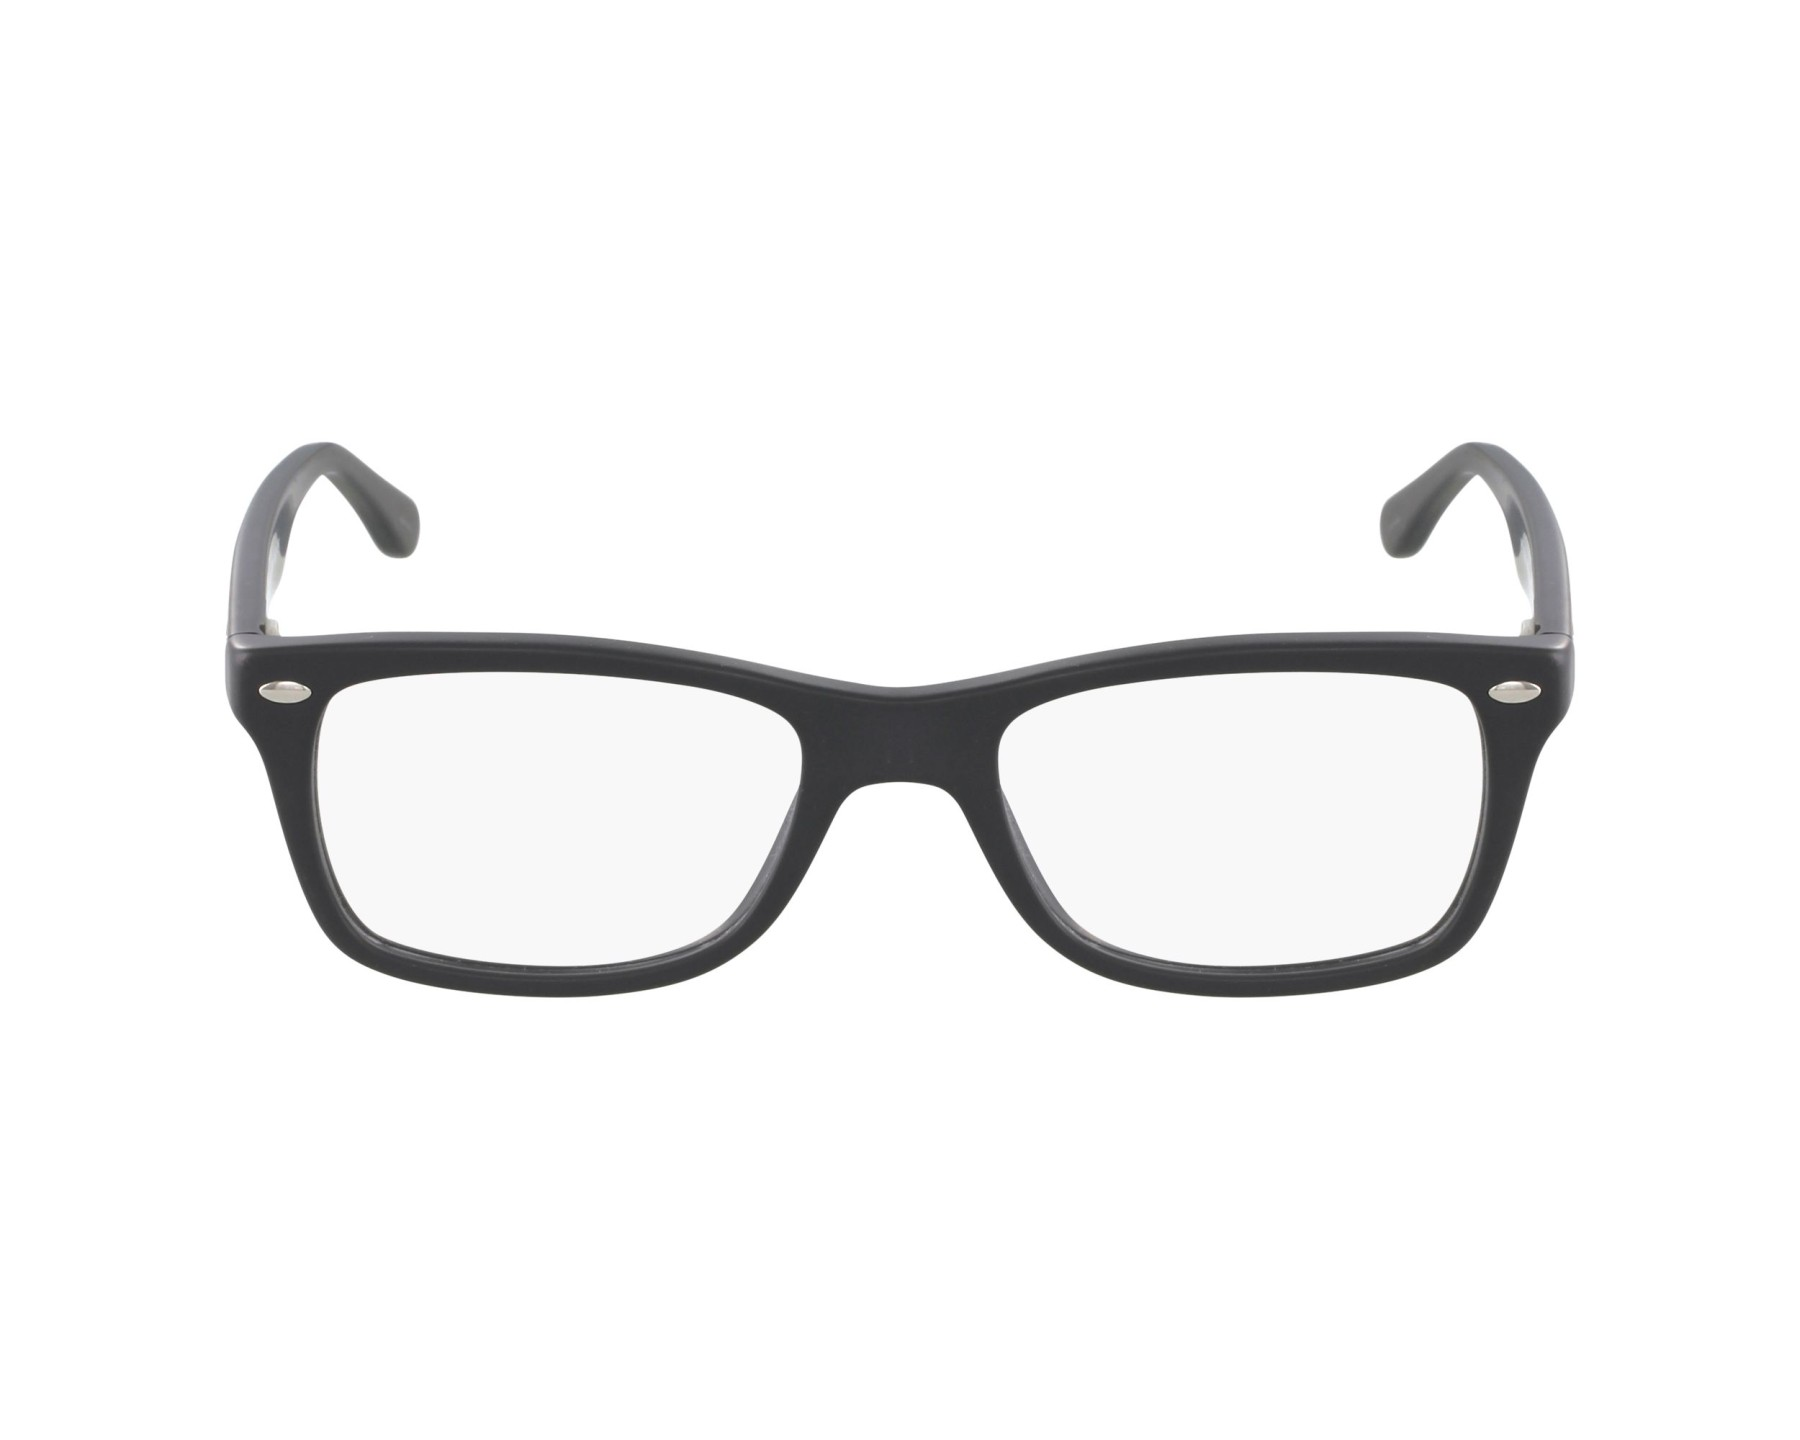 6f71443934 Ray Ban Rx 7047 - Bitterroot Public Library